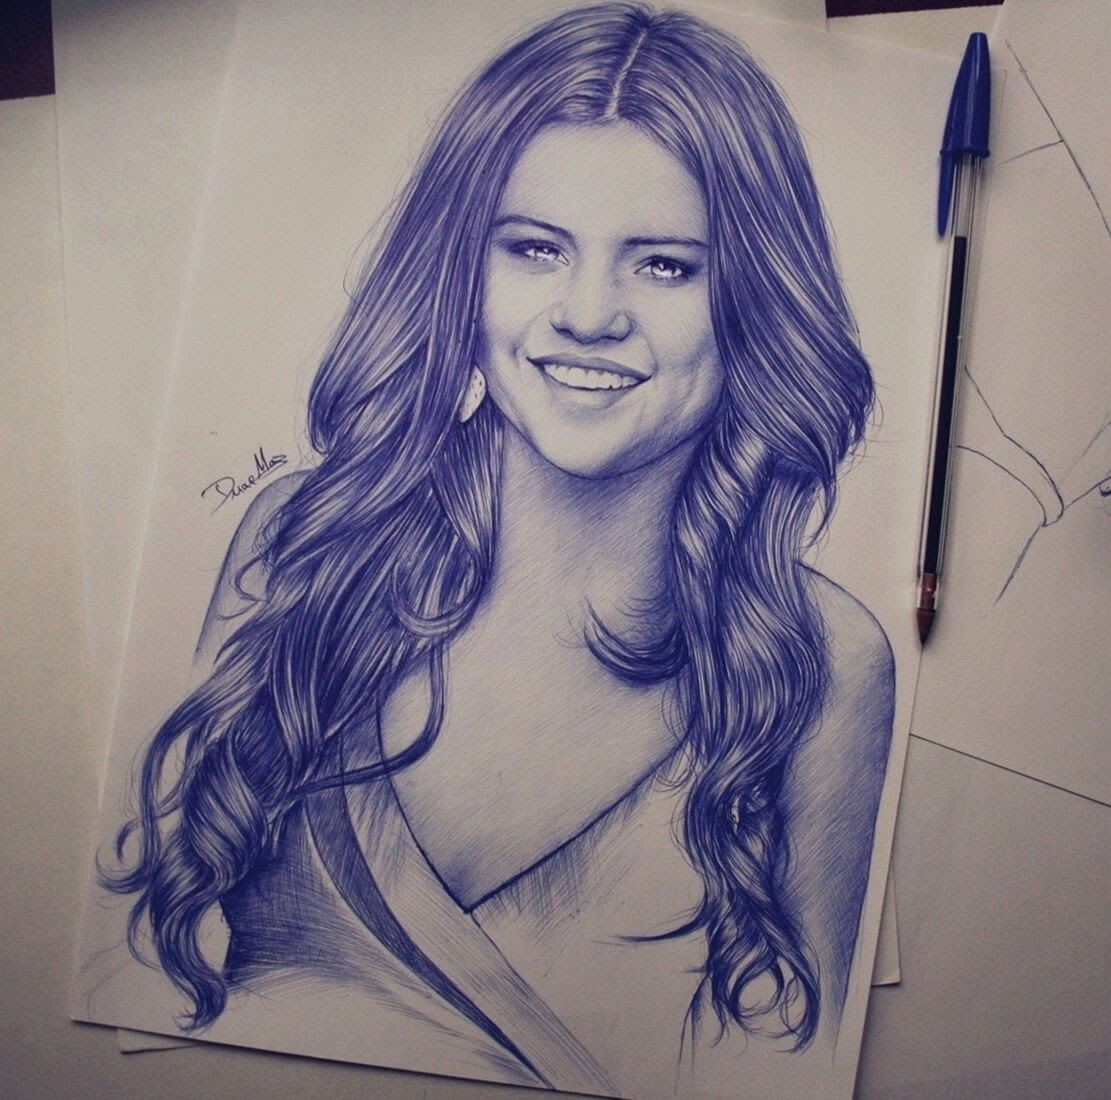 09-Duae-Maz-Blue-and-Black-Ballpoint-Pen-Portraits-www-designstack-co